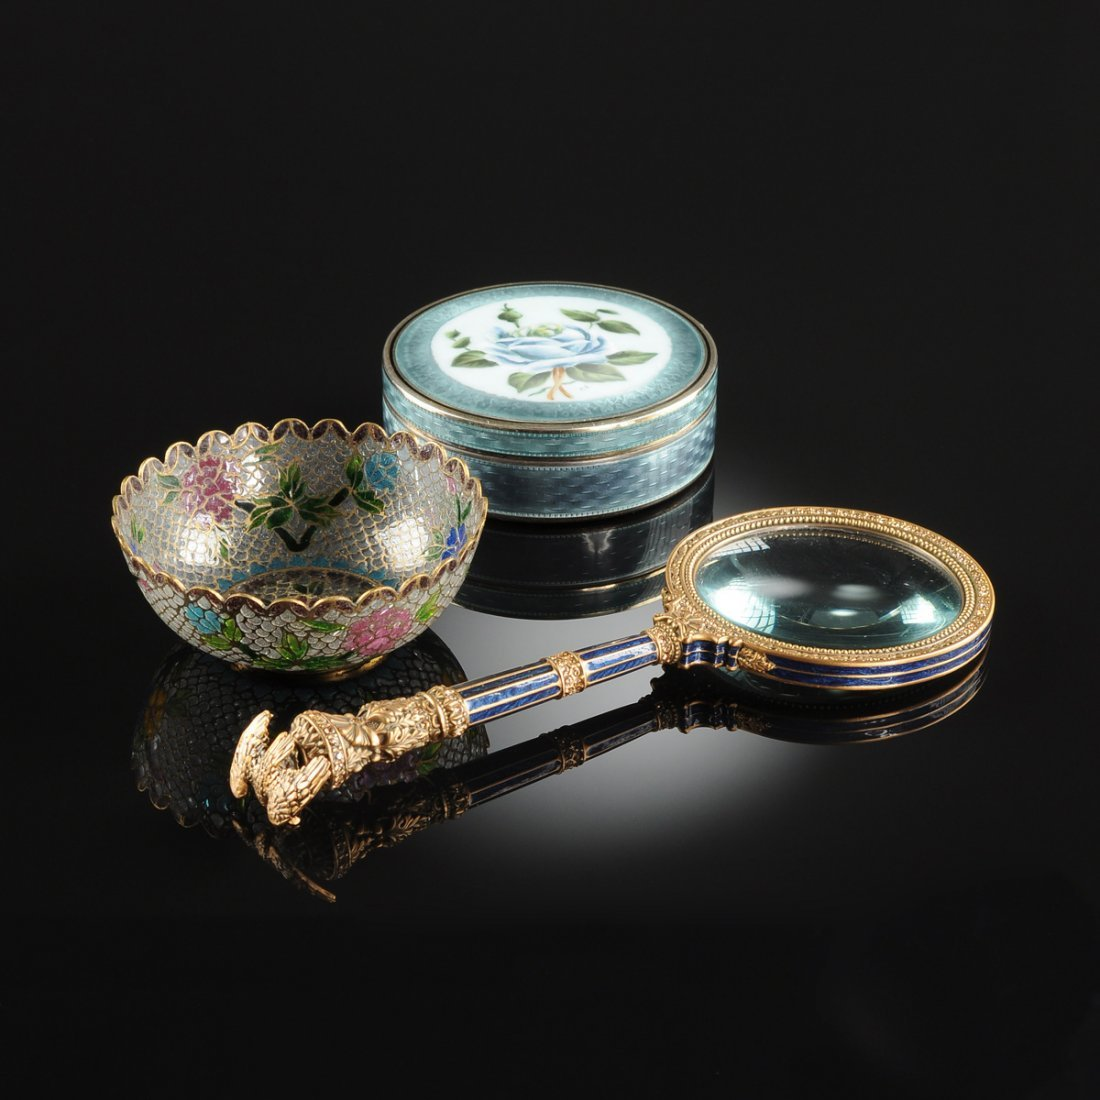 A GROUP OF THREE FINE ENAMELED LADY'S VANITY